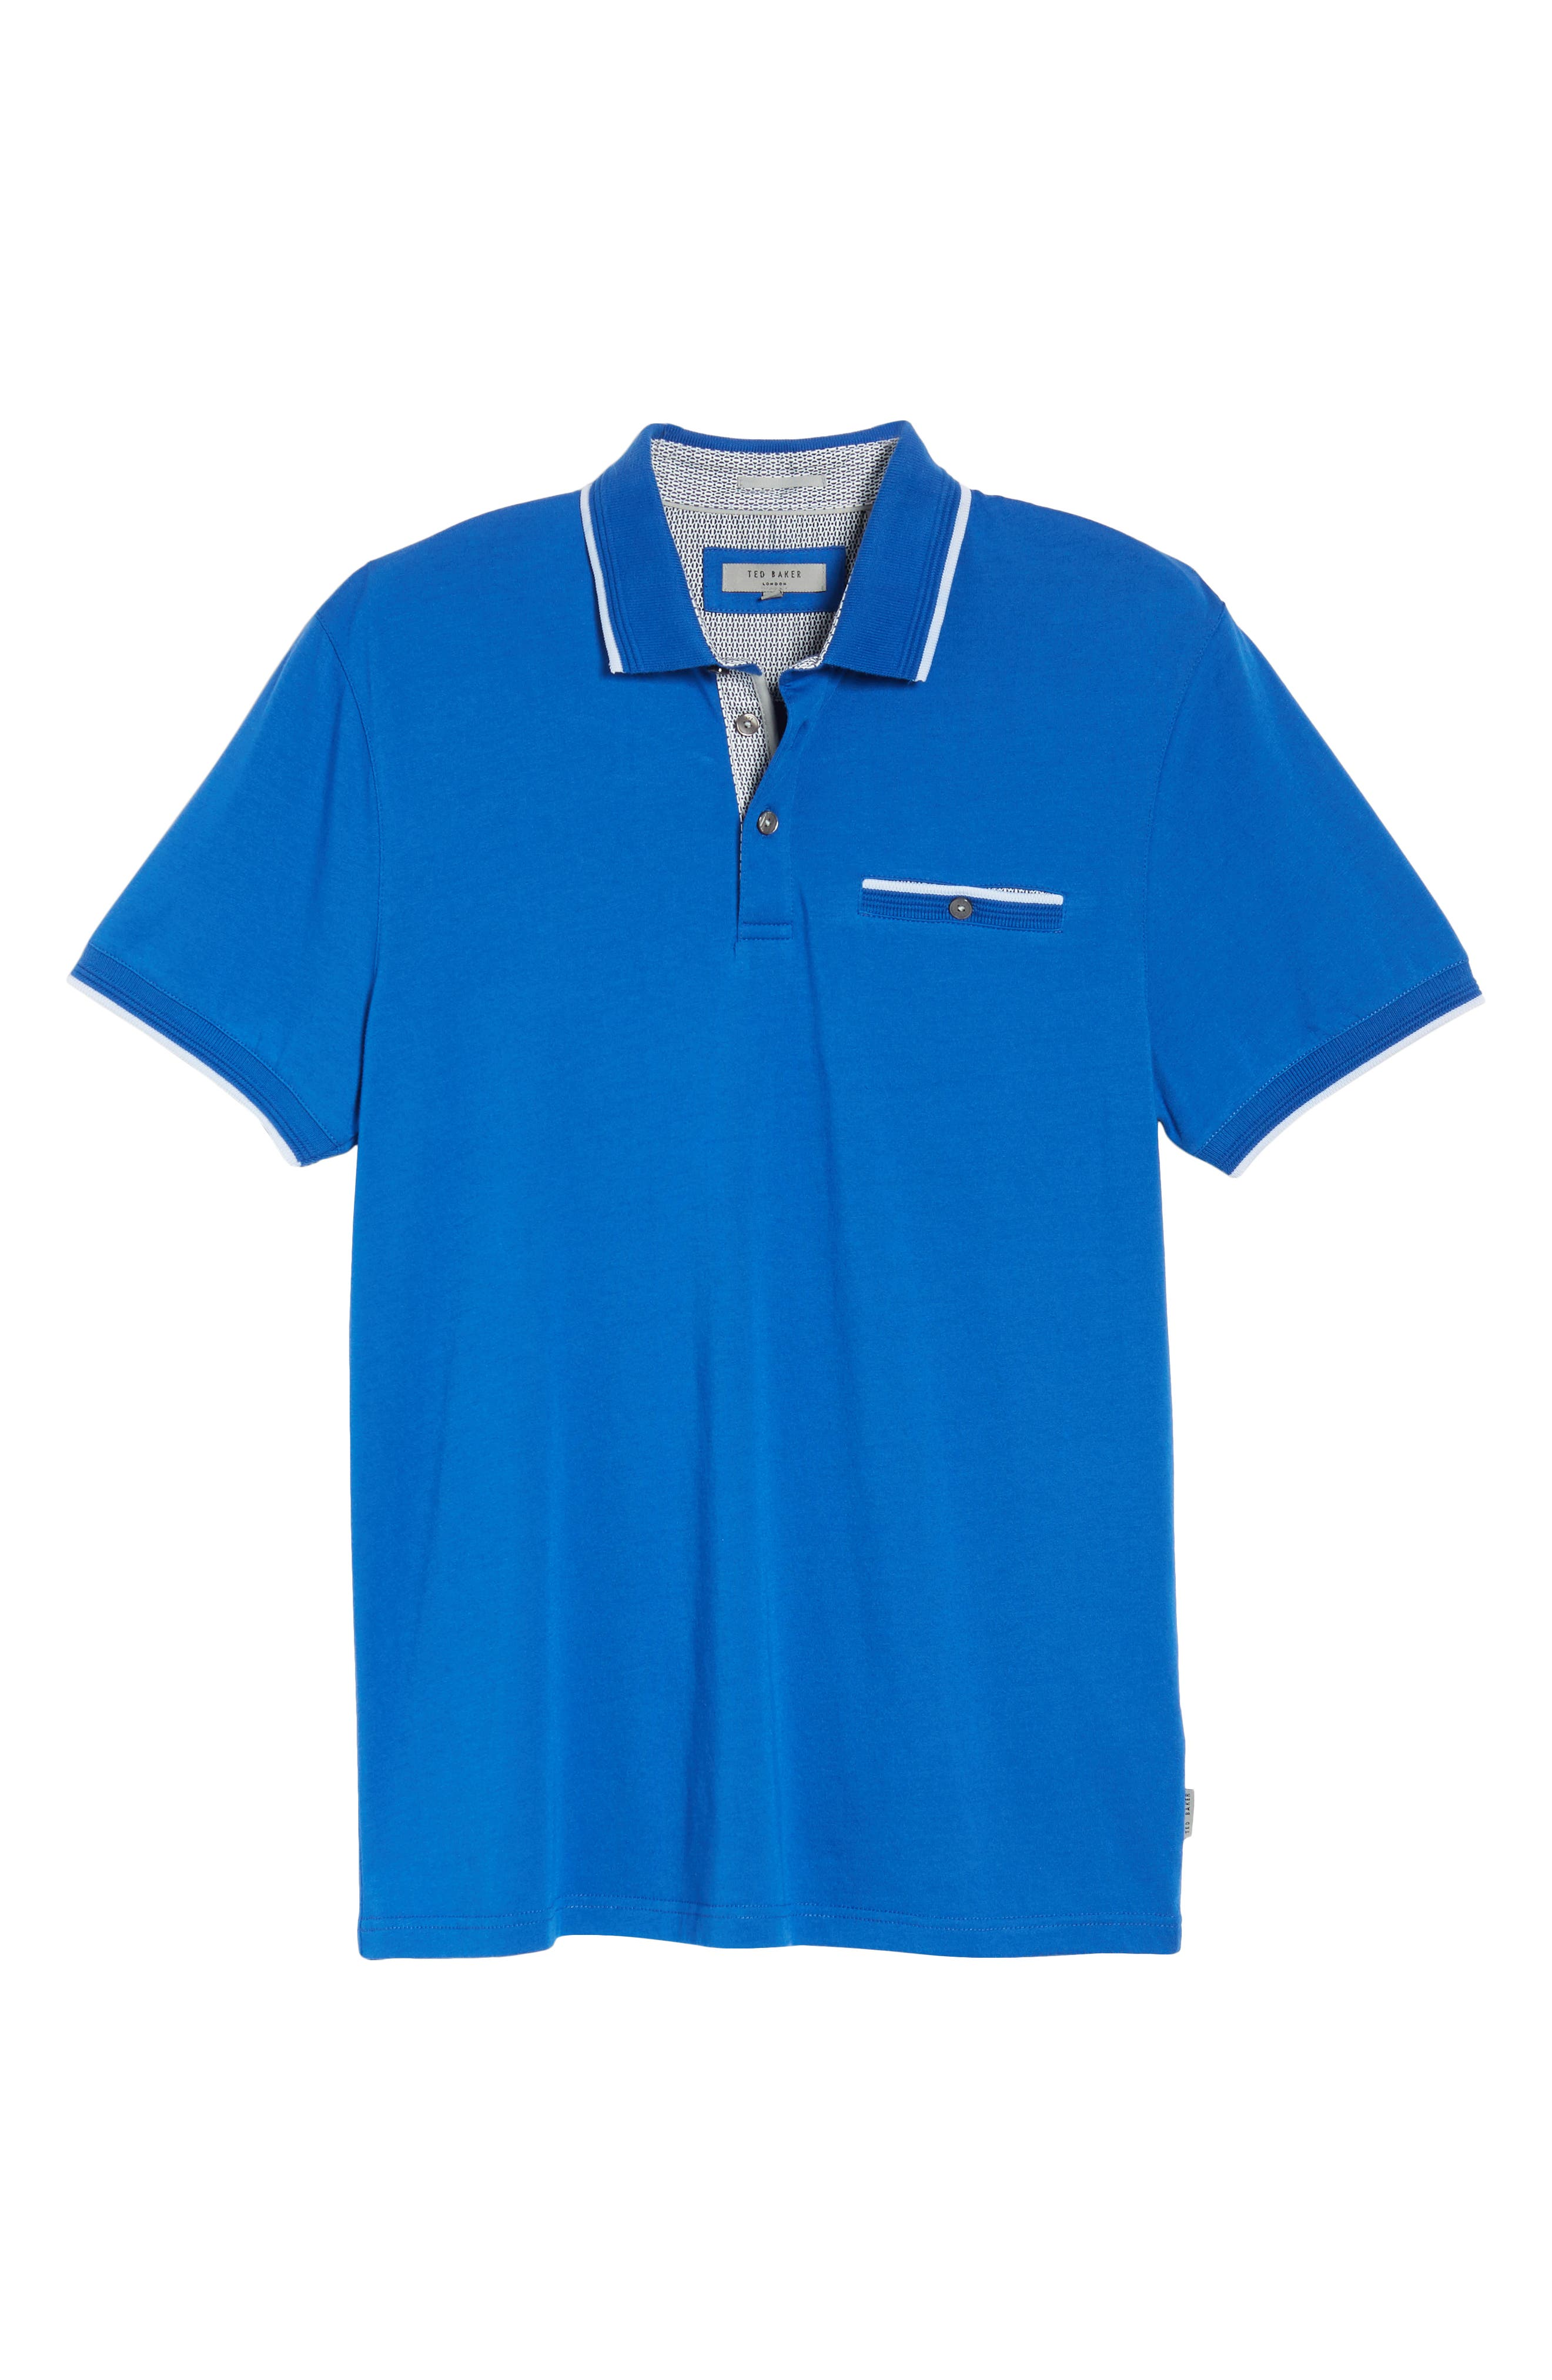 Derry Modern Slim Fit Polo,                             Alternate thumbnail 6, color,                             BRIGHT BLUE